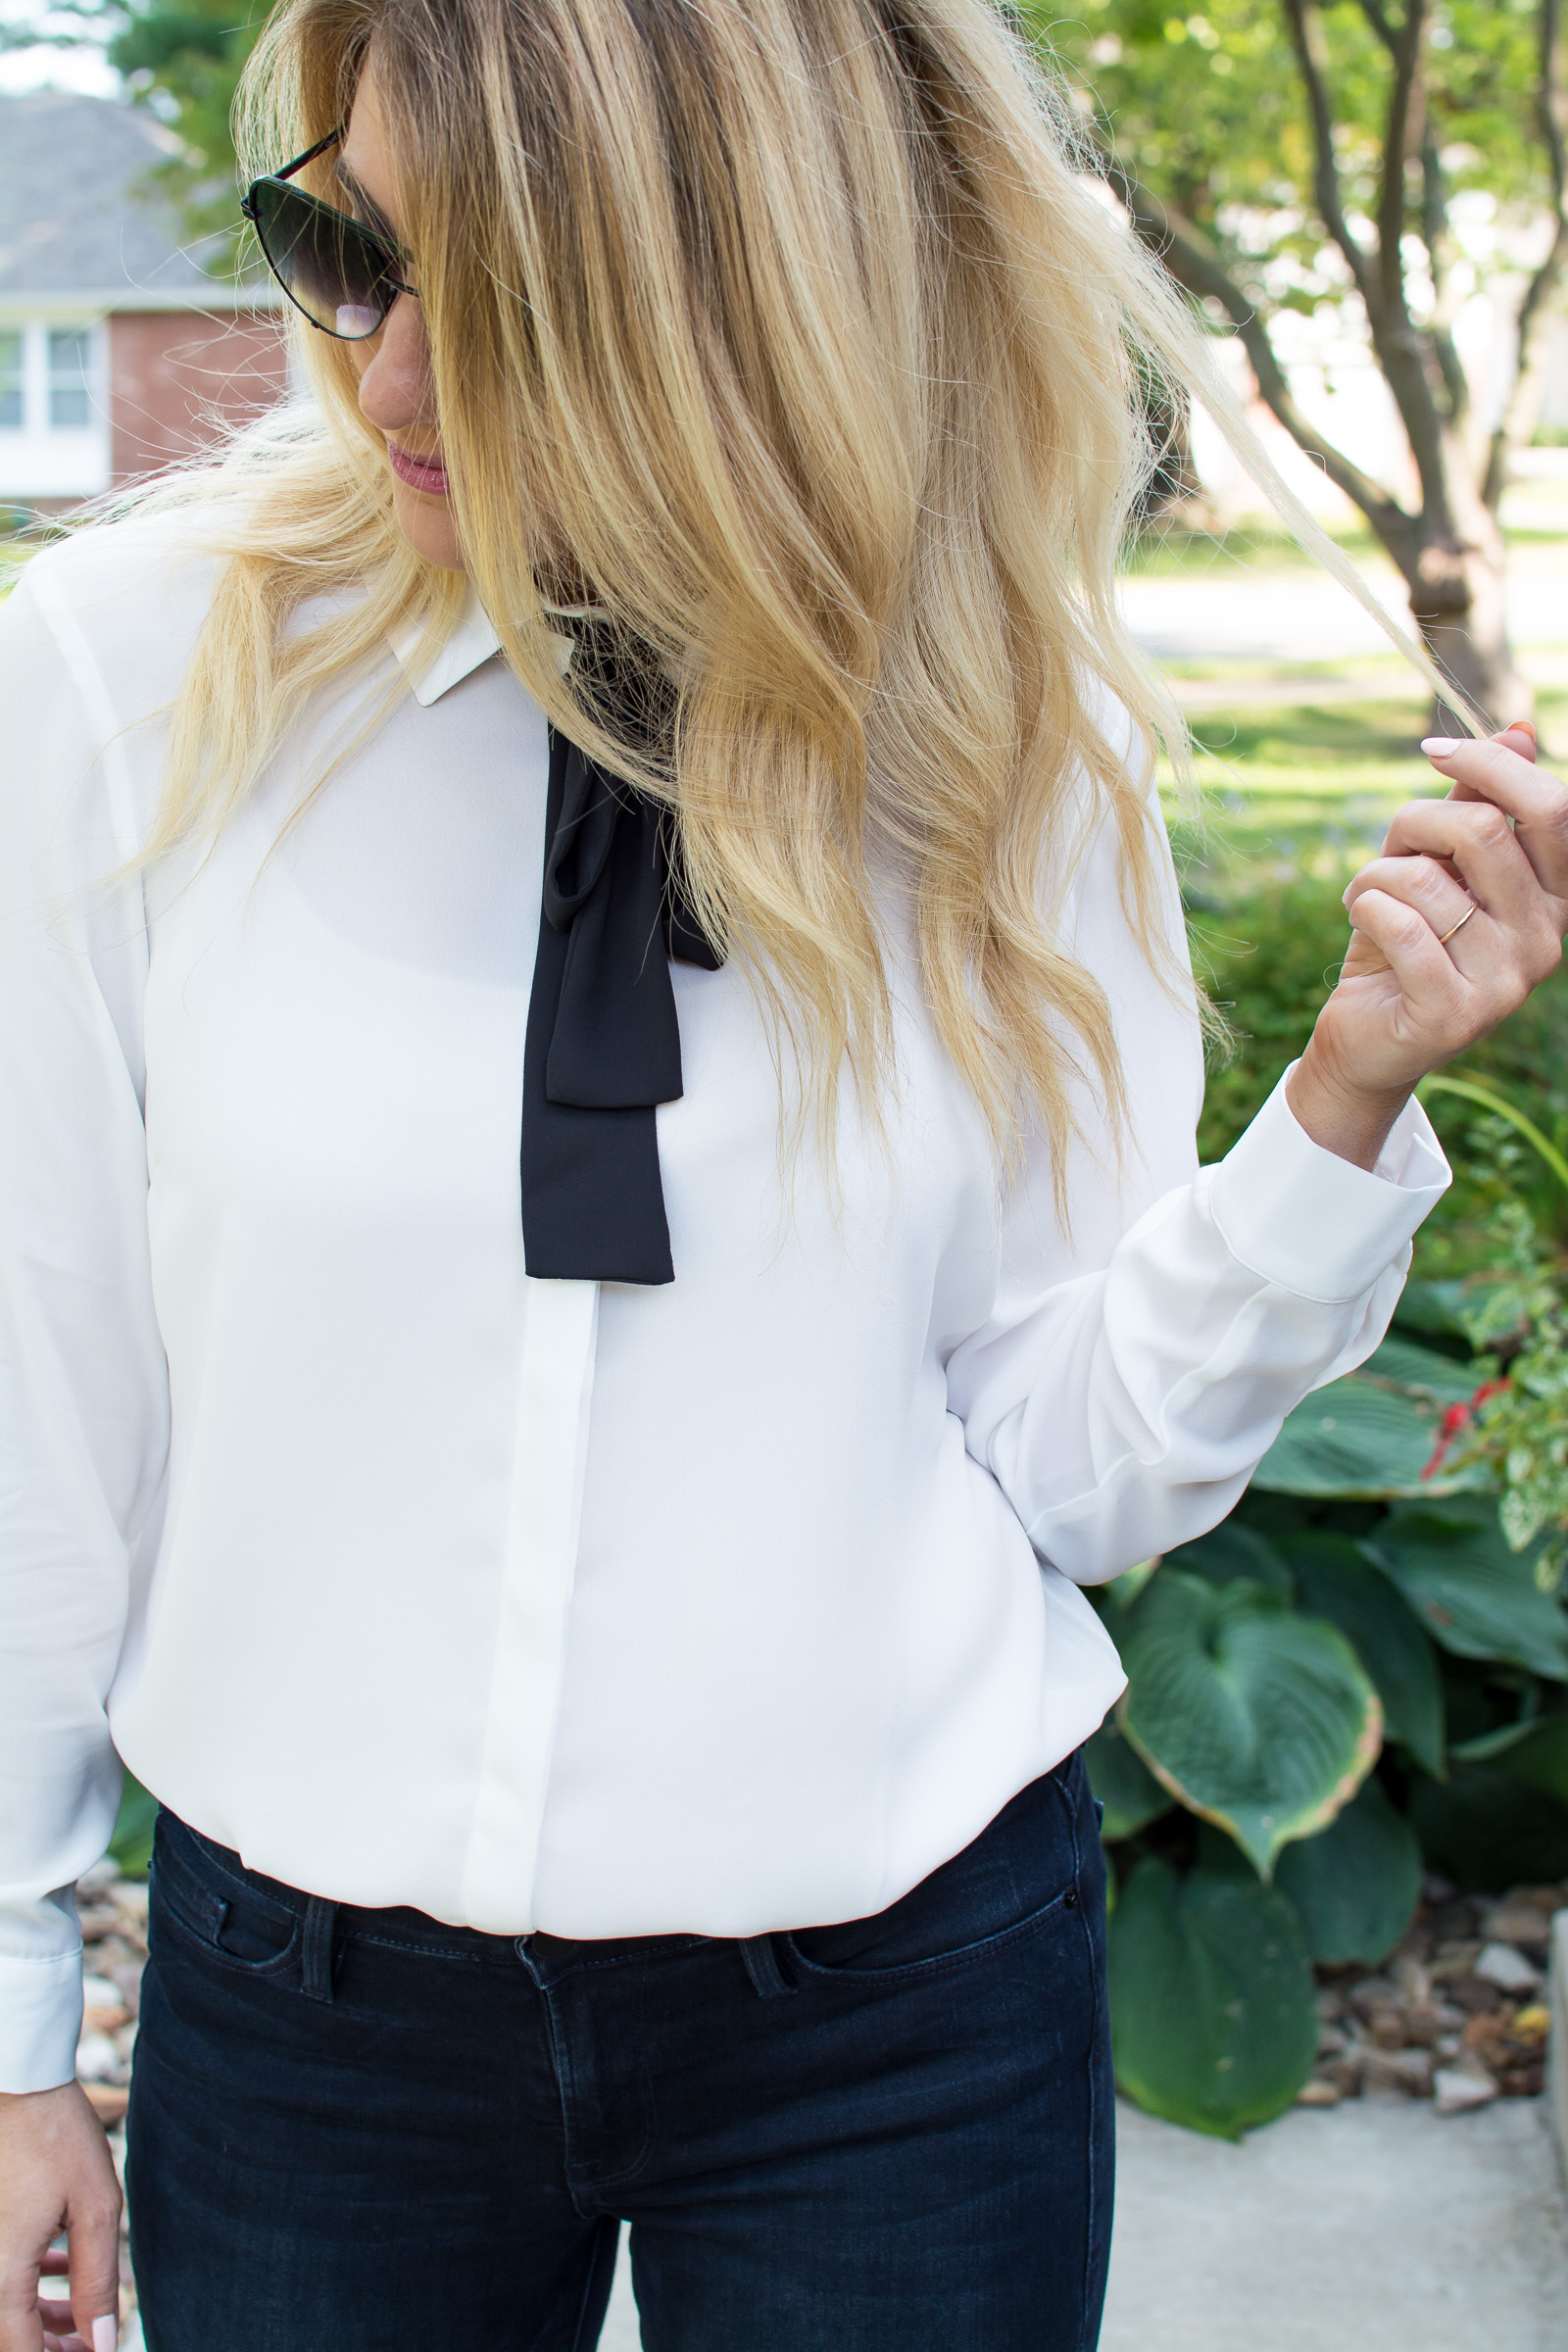 A Bow-tie Blouse with Dark Denim. | Ashley from LSR